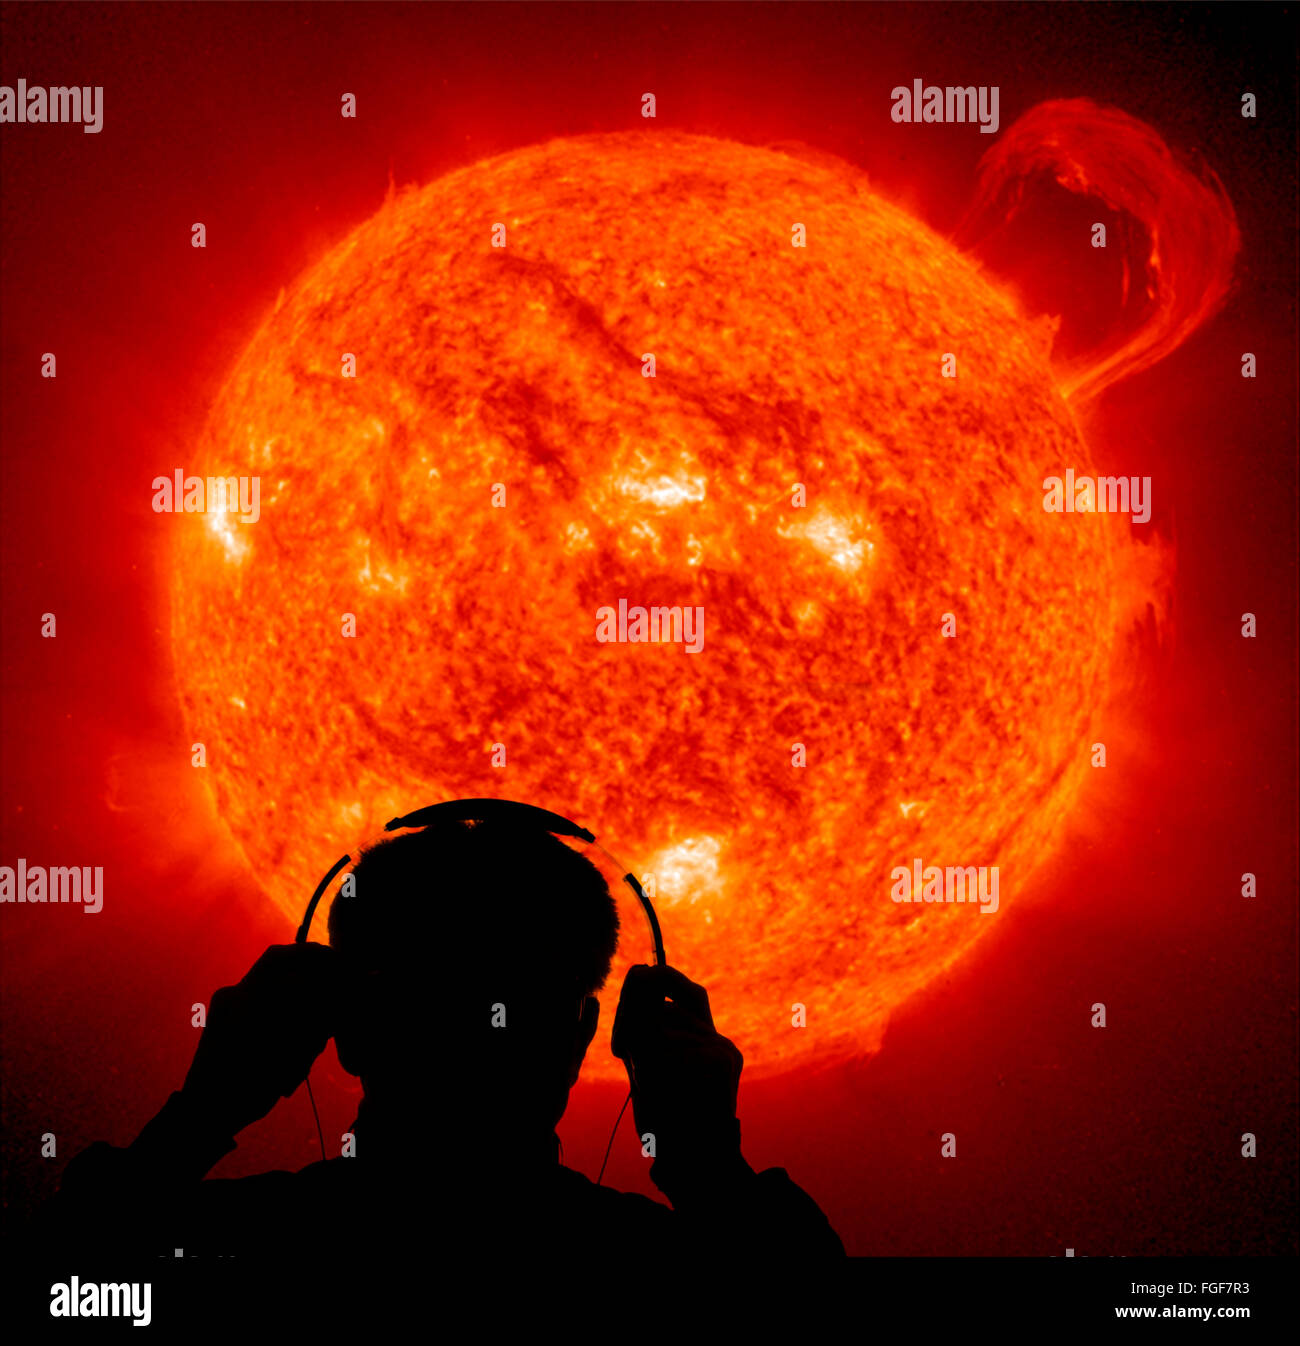 computer generated man listening on sun sounds on head phones - Stock Image